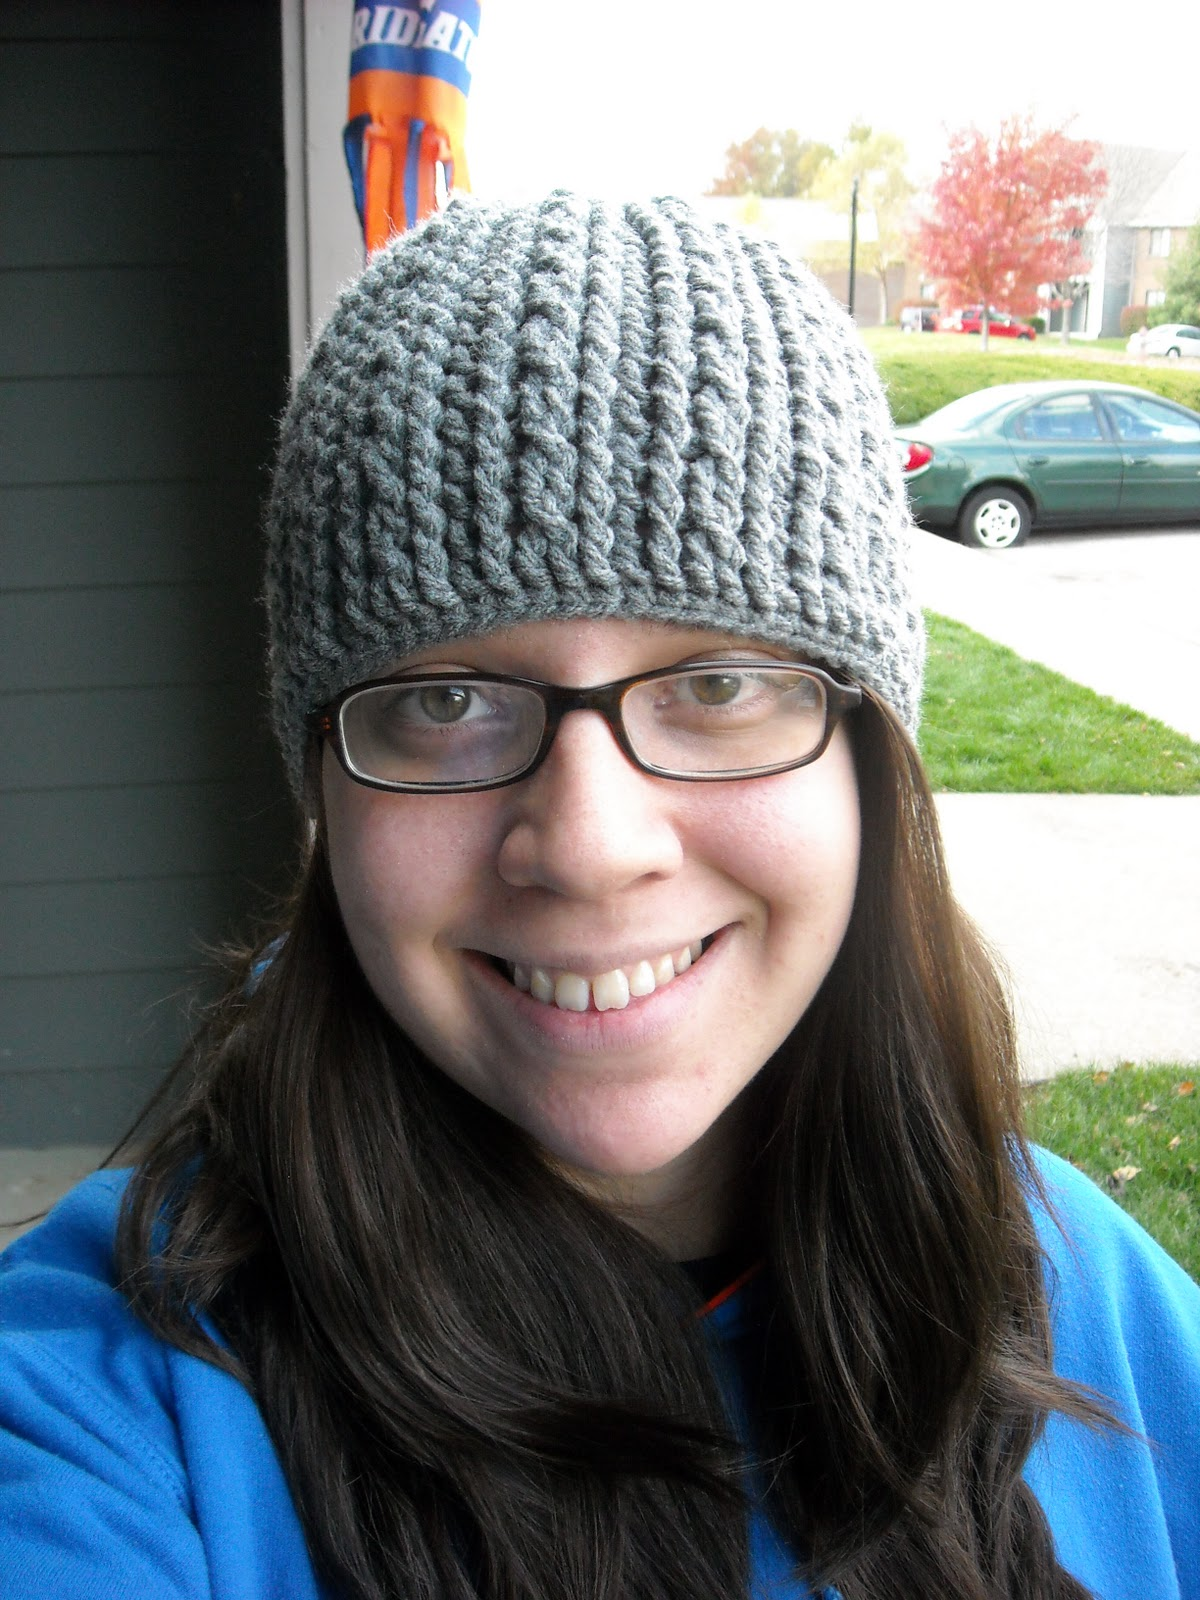 Think-Courage-Strength  Braided Cable Hat Pattern (2 sizes) bb430714283